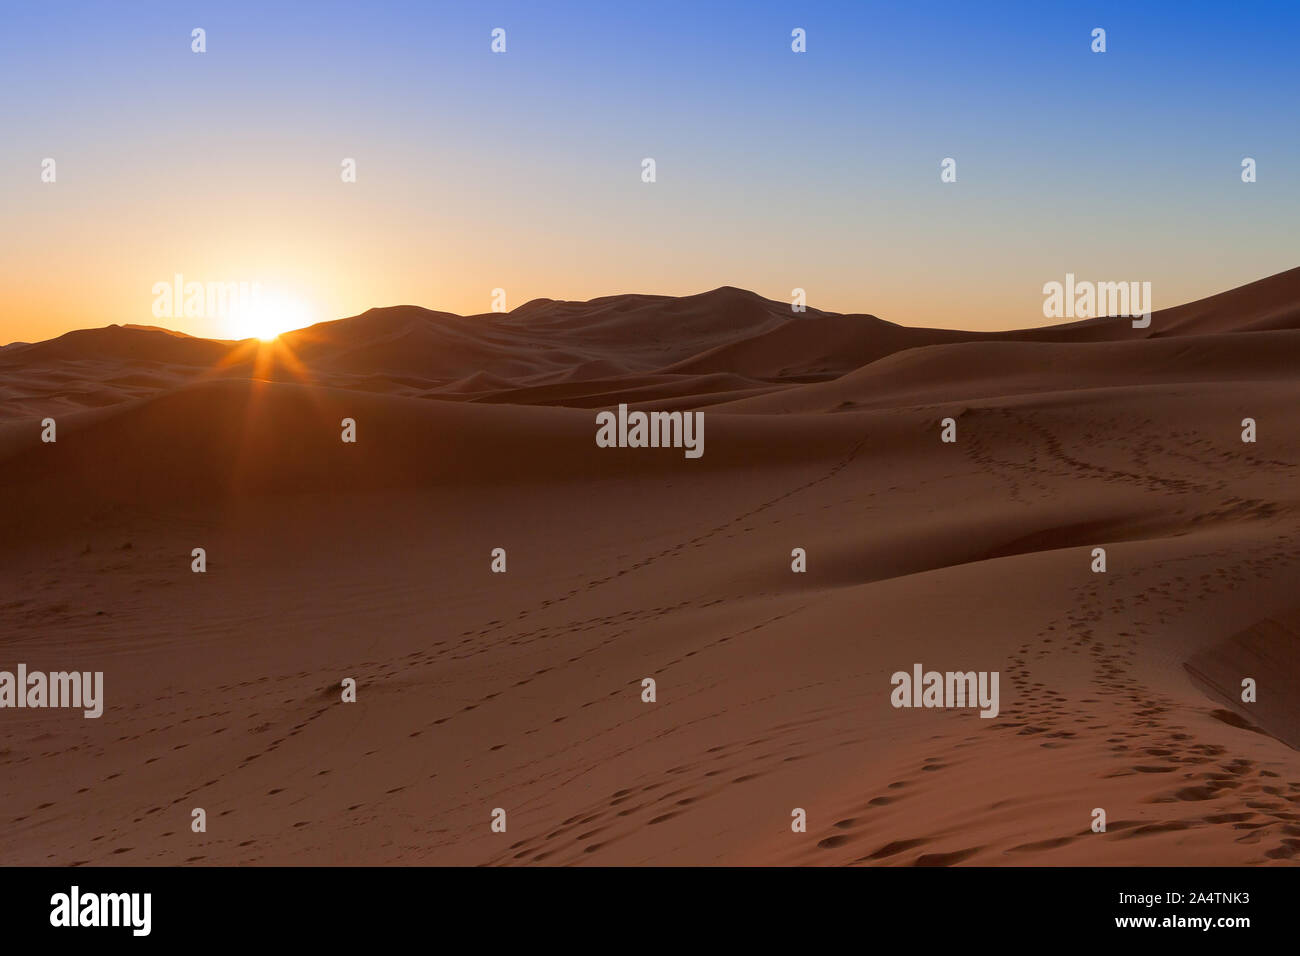 Erg Chebbi, Morocco, sand dunes of Sahara desert formed by wind are awakening in the first rays of the day, illuminated by the sun. Stock Photo